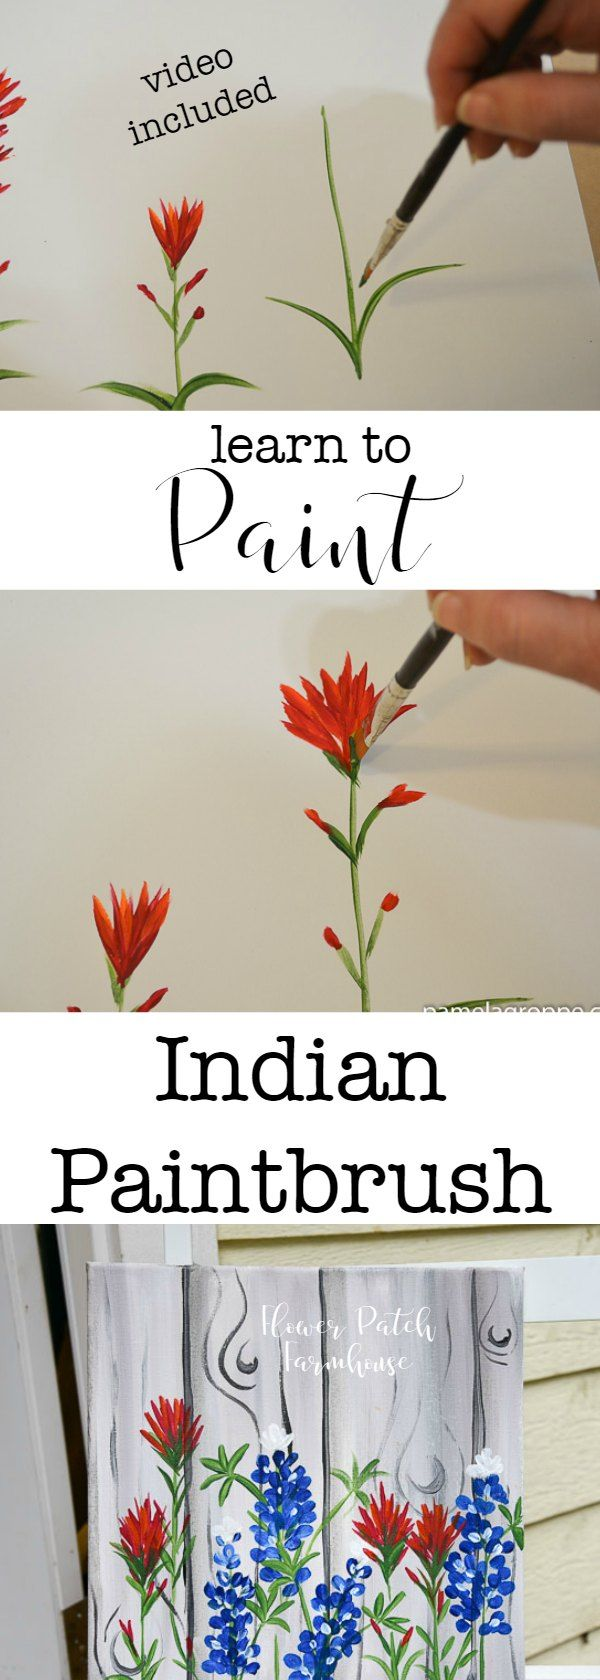 Learn to Paint Indian Paintbrush, one stroke at a time. | Macetas ...